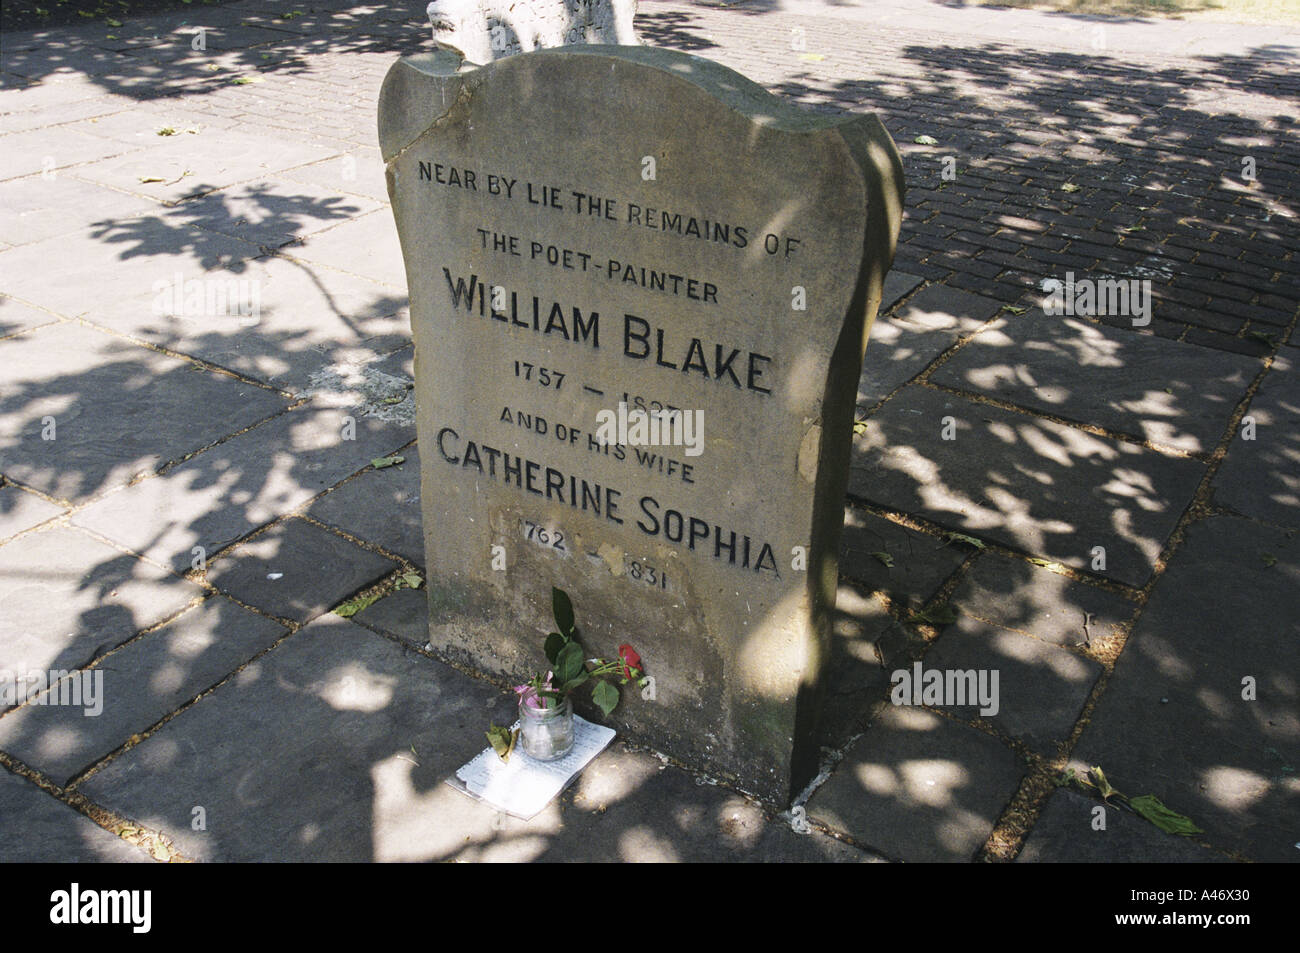 The headstone of William Blake, poet and artist with a flower by the grave in Bunhill Fields, London, UK - Stock Image